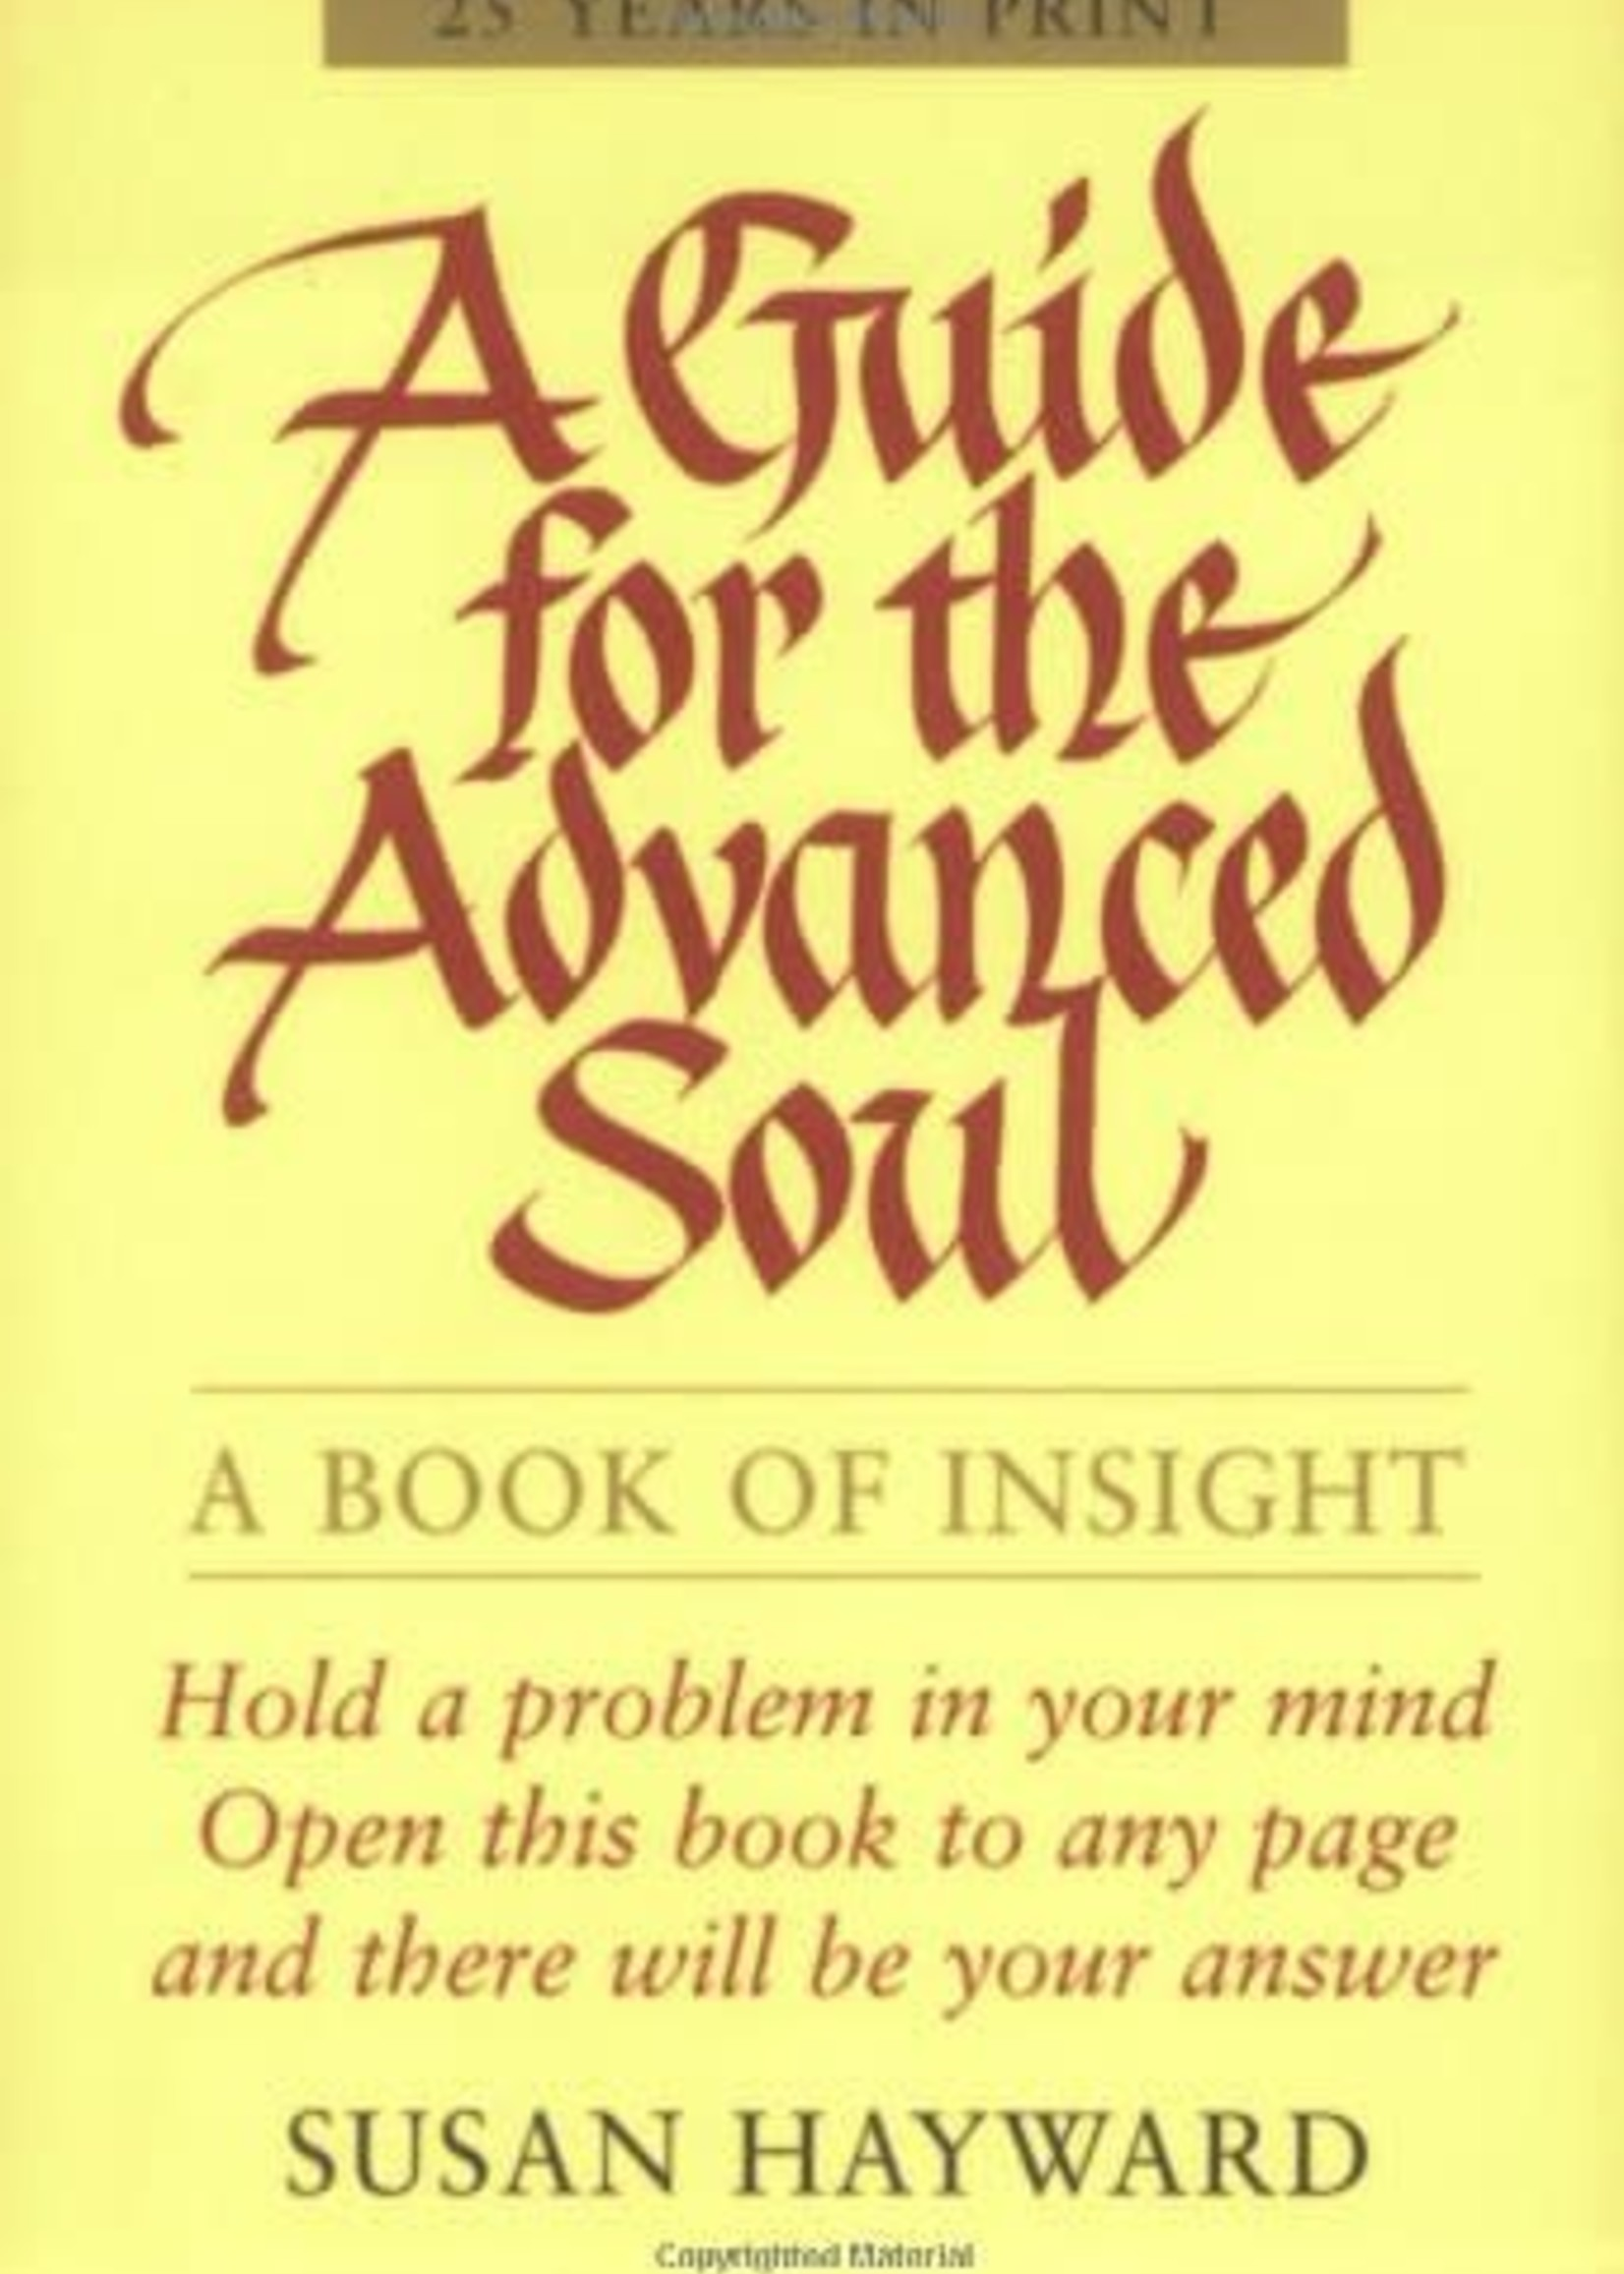 A Guide for the Advanced Soul | A Book of Insight